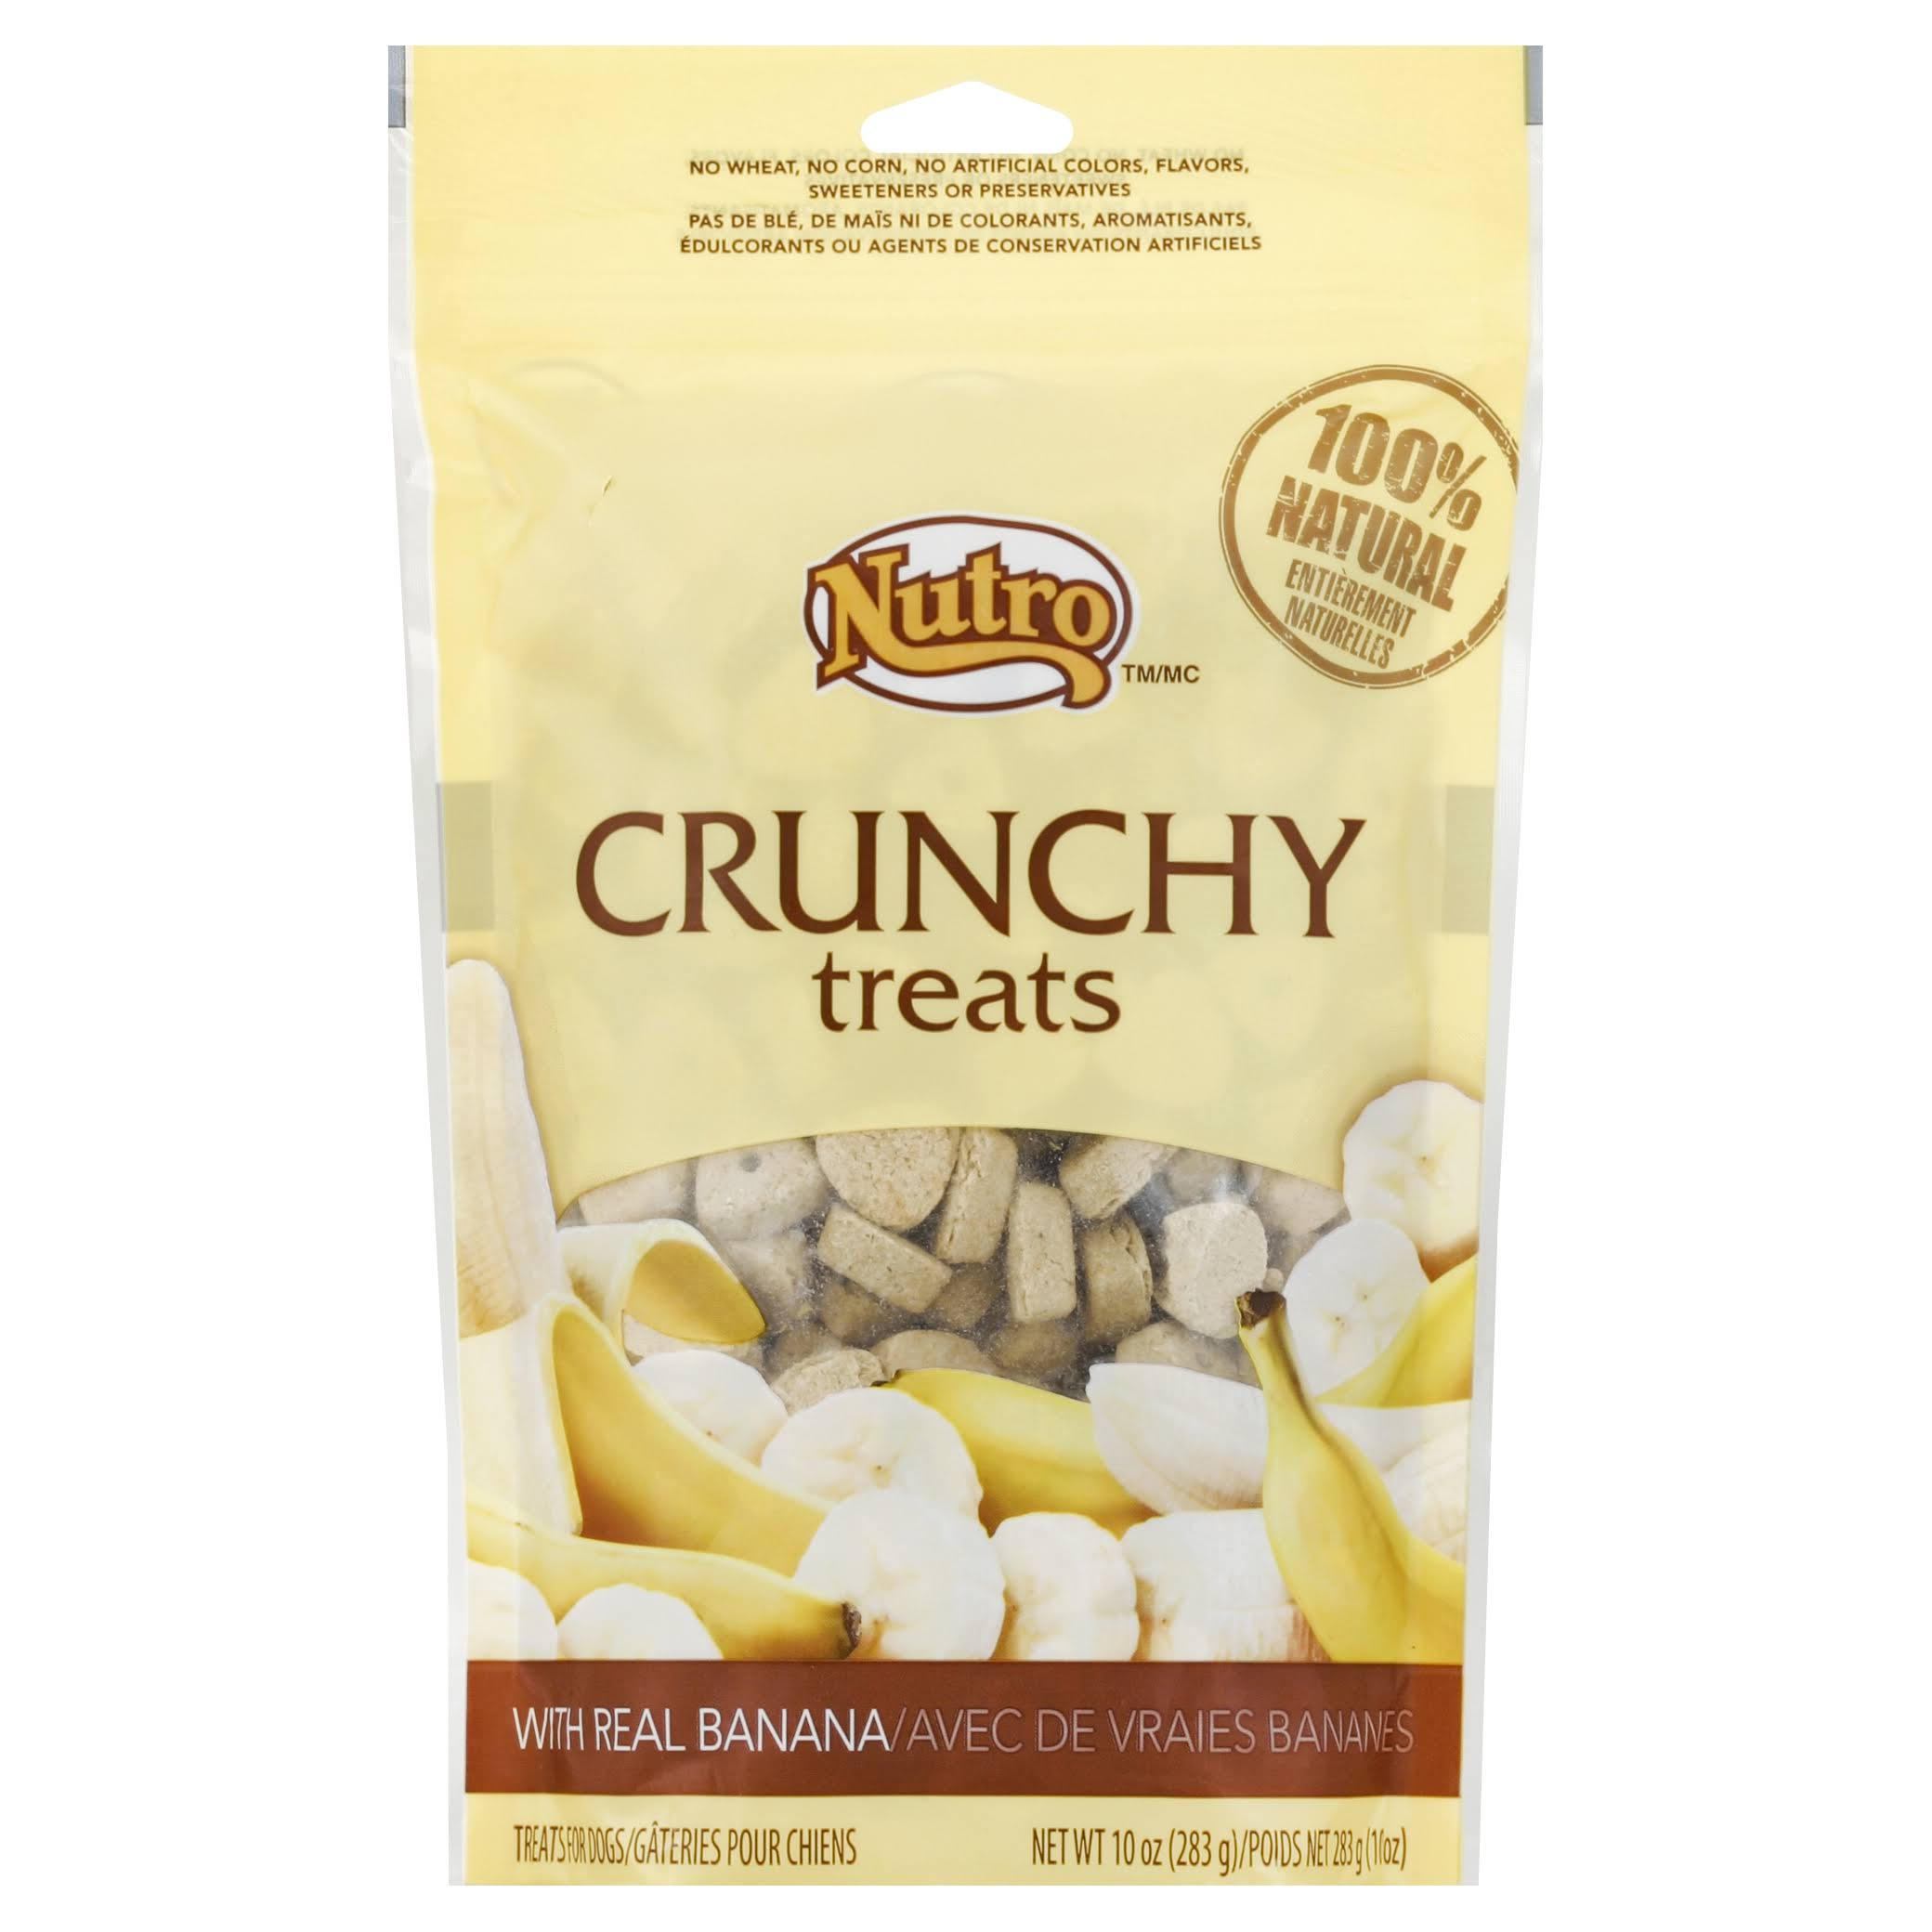 Nutro Products Crunchy Dog Treats - Banana, 10oz